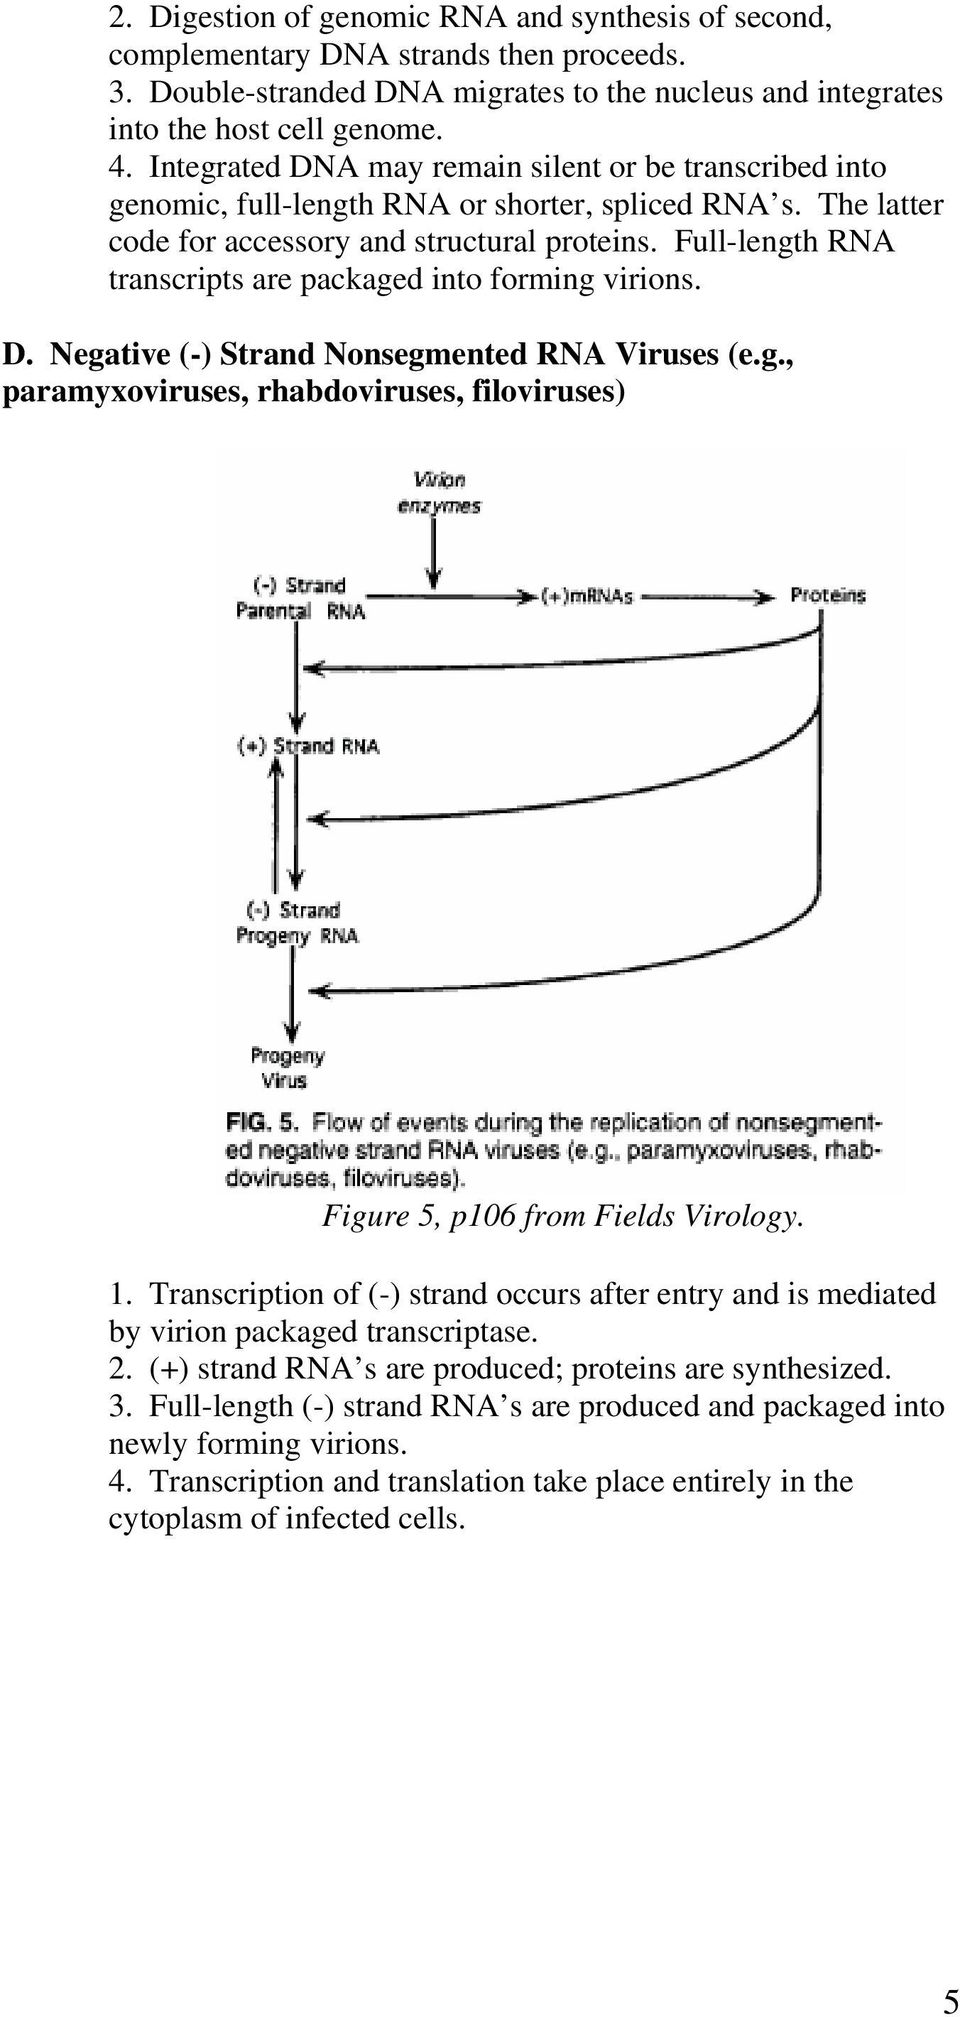 Full-length RNA transcripts are packaged into forming virions. D. Negative (-) Strand Nonsegmented RNA Viruses (e.g., paramyxoviruses, rhabdoviruses, filoviruses) Figure 5, p106 from Fields Virology.